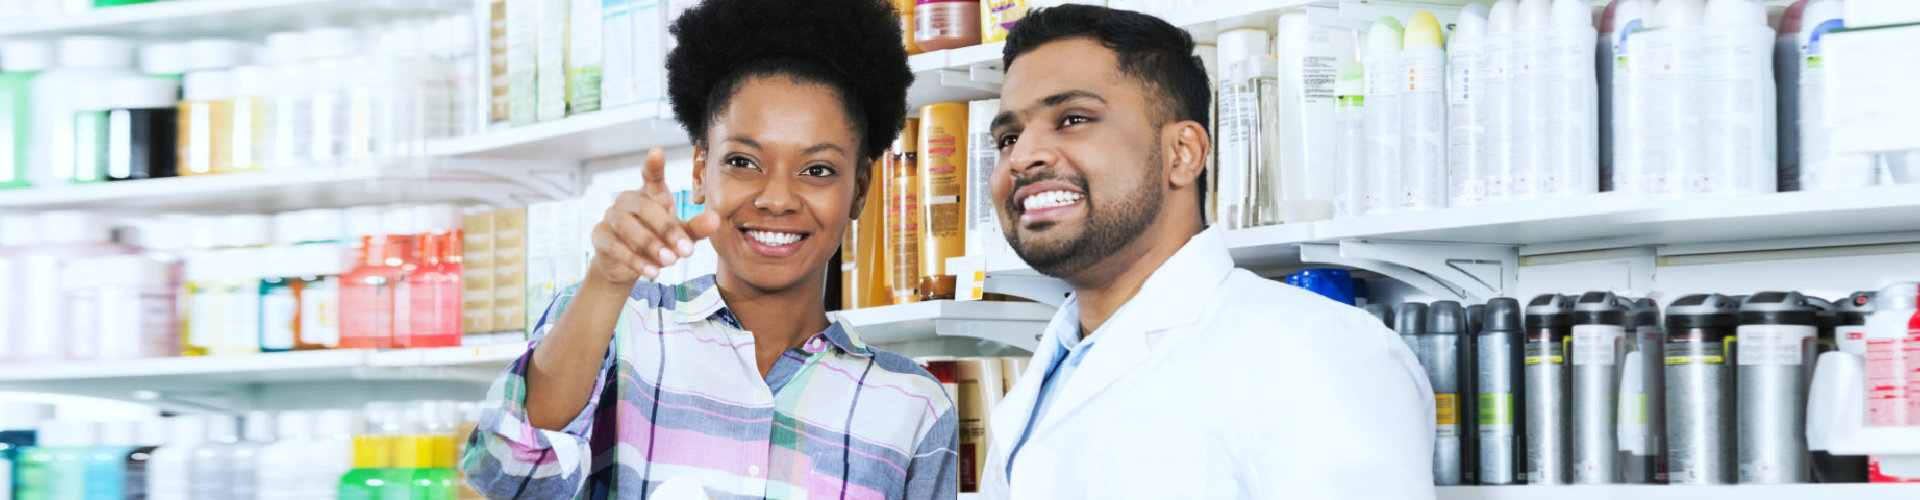 male pharmacist and woman smiling